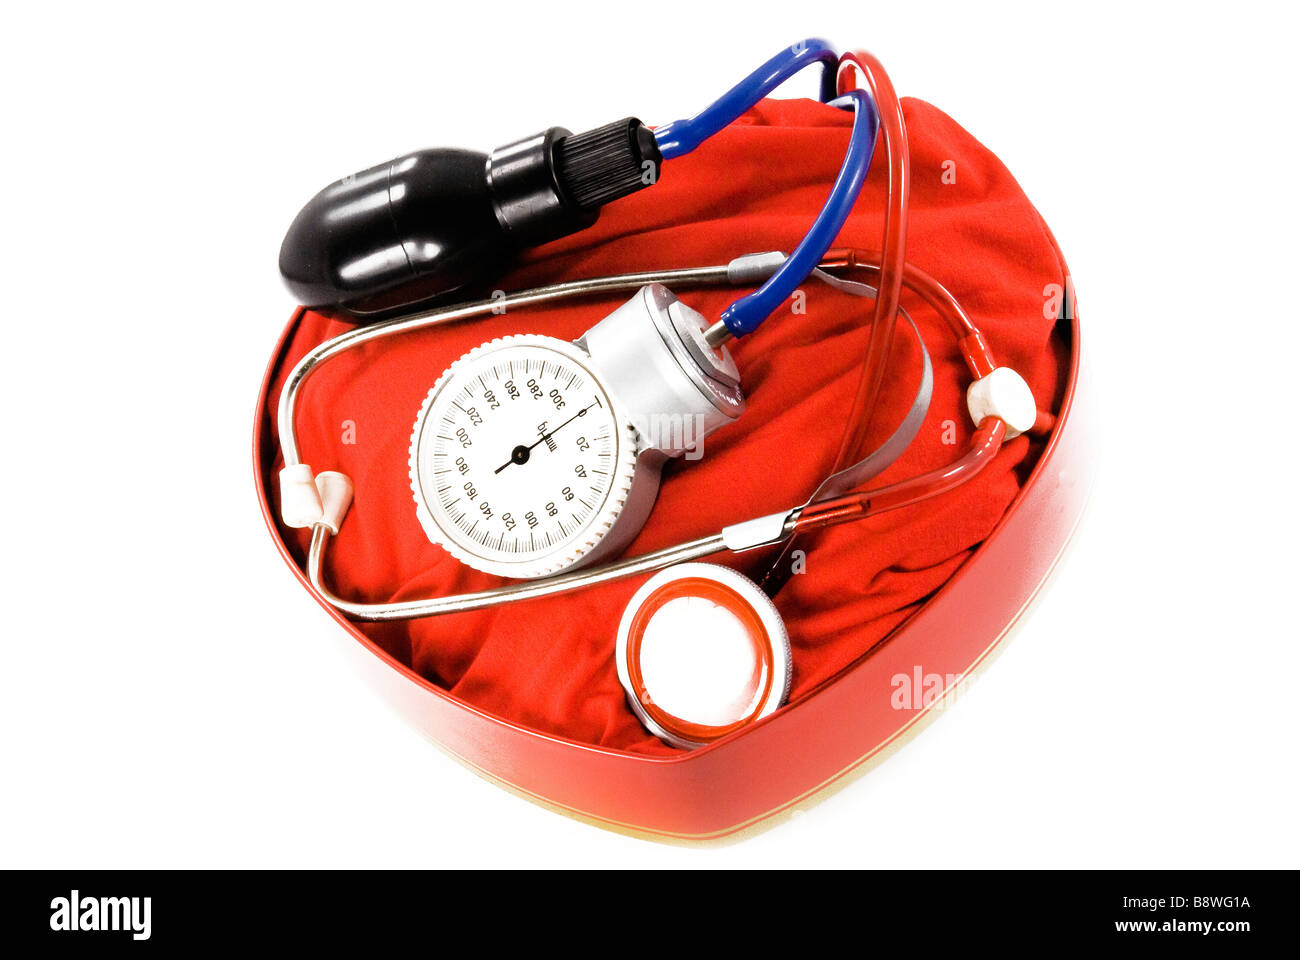 Manometer and Stethoscope pressure blood pressure packed in a box in the form of heart - Stock Image